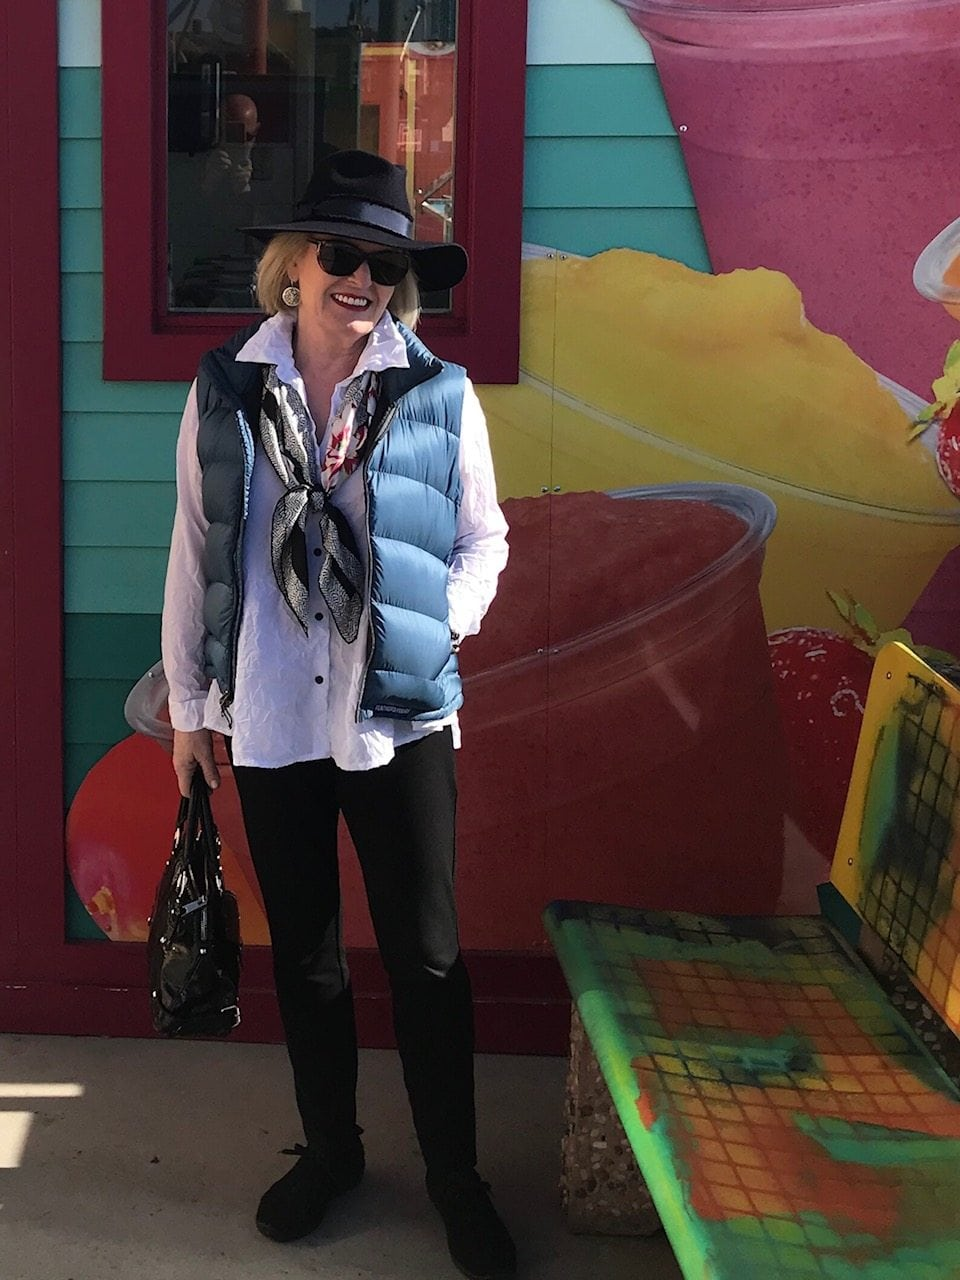 Look of the Week: Fashion for RVing